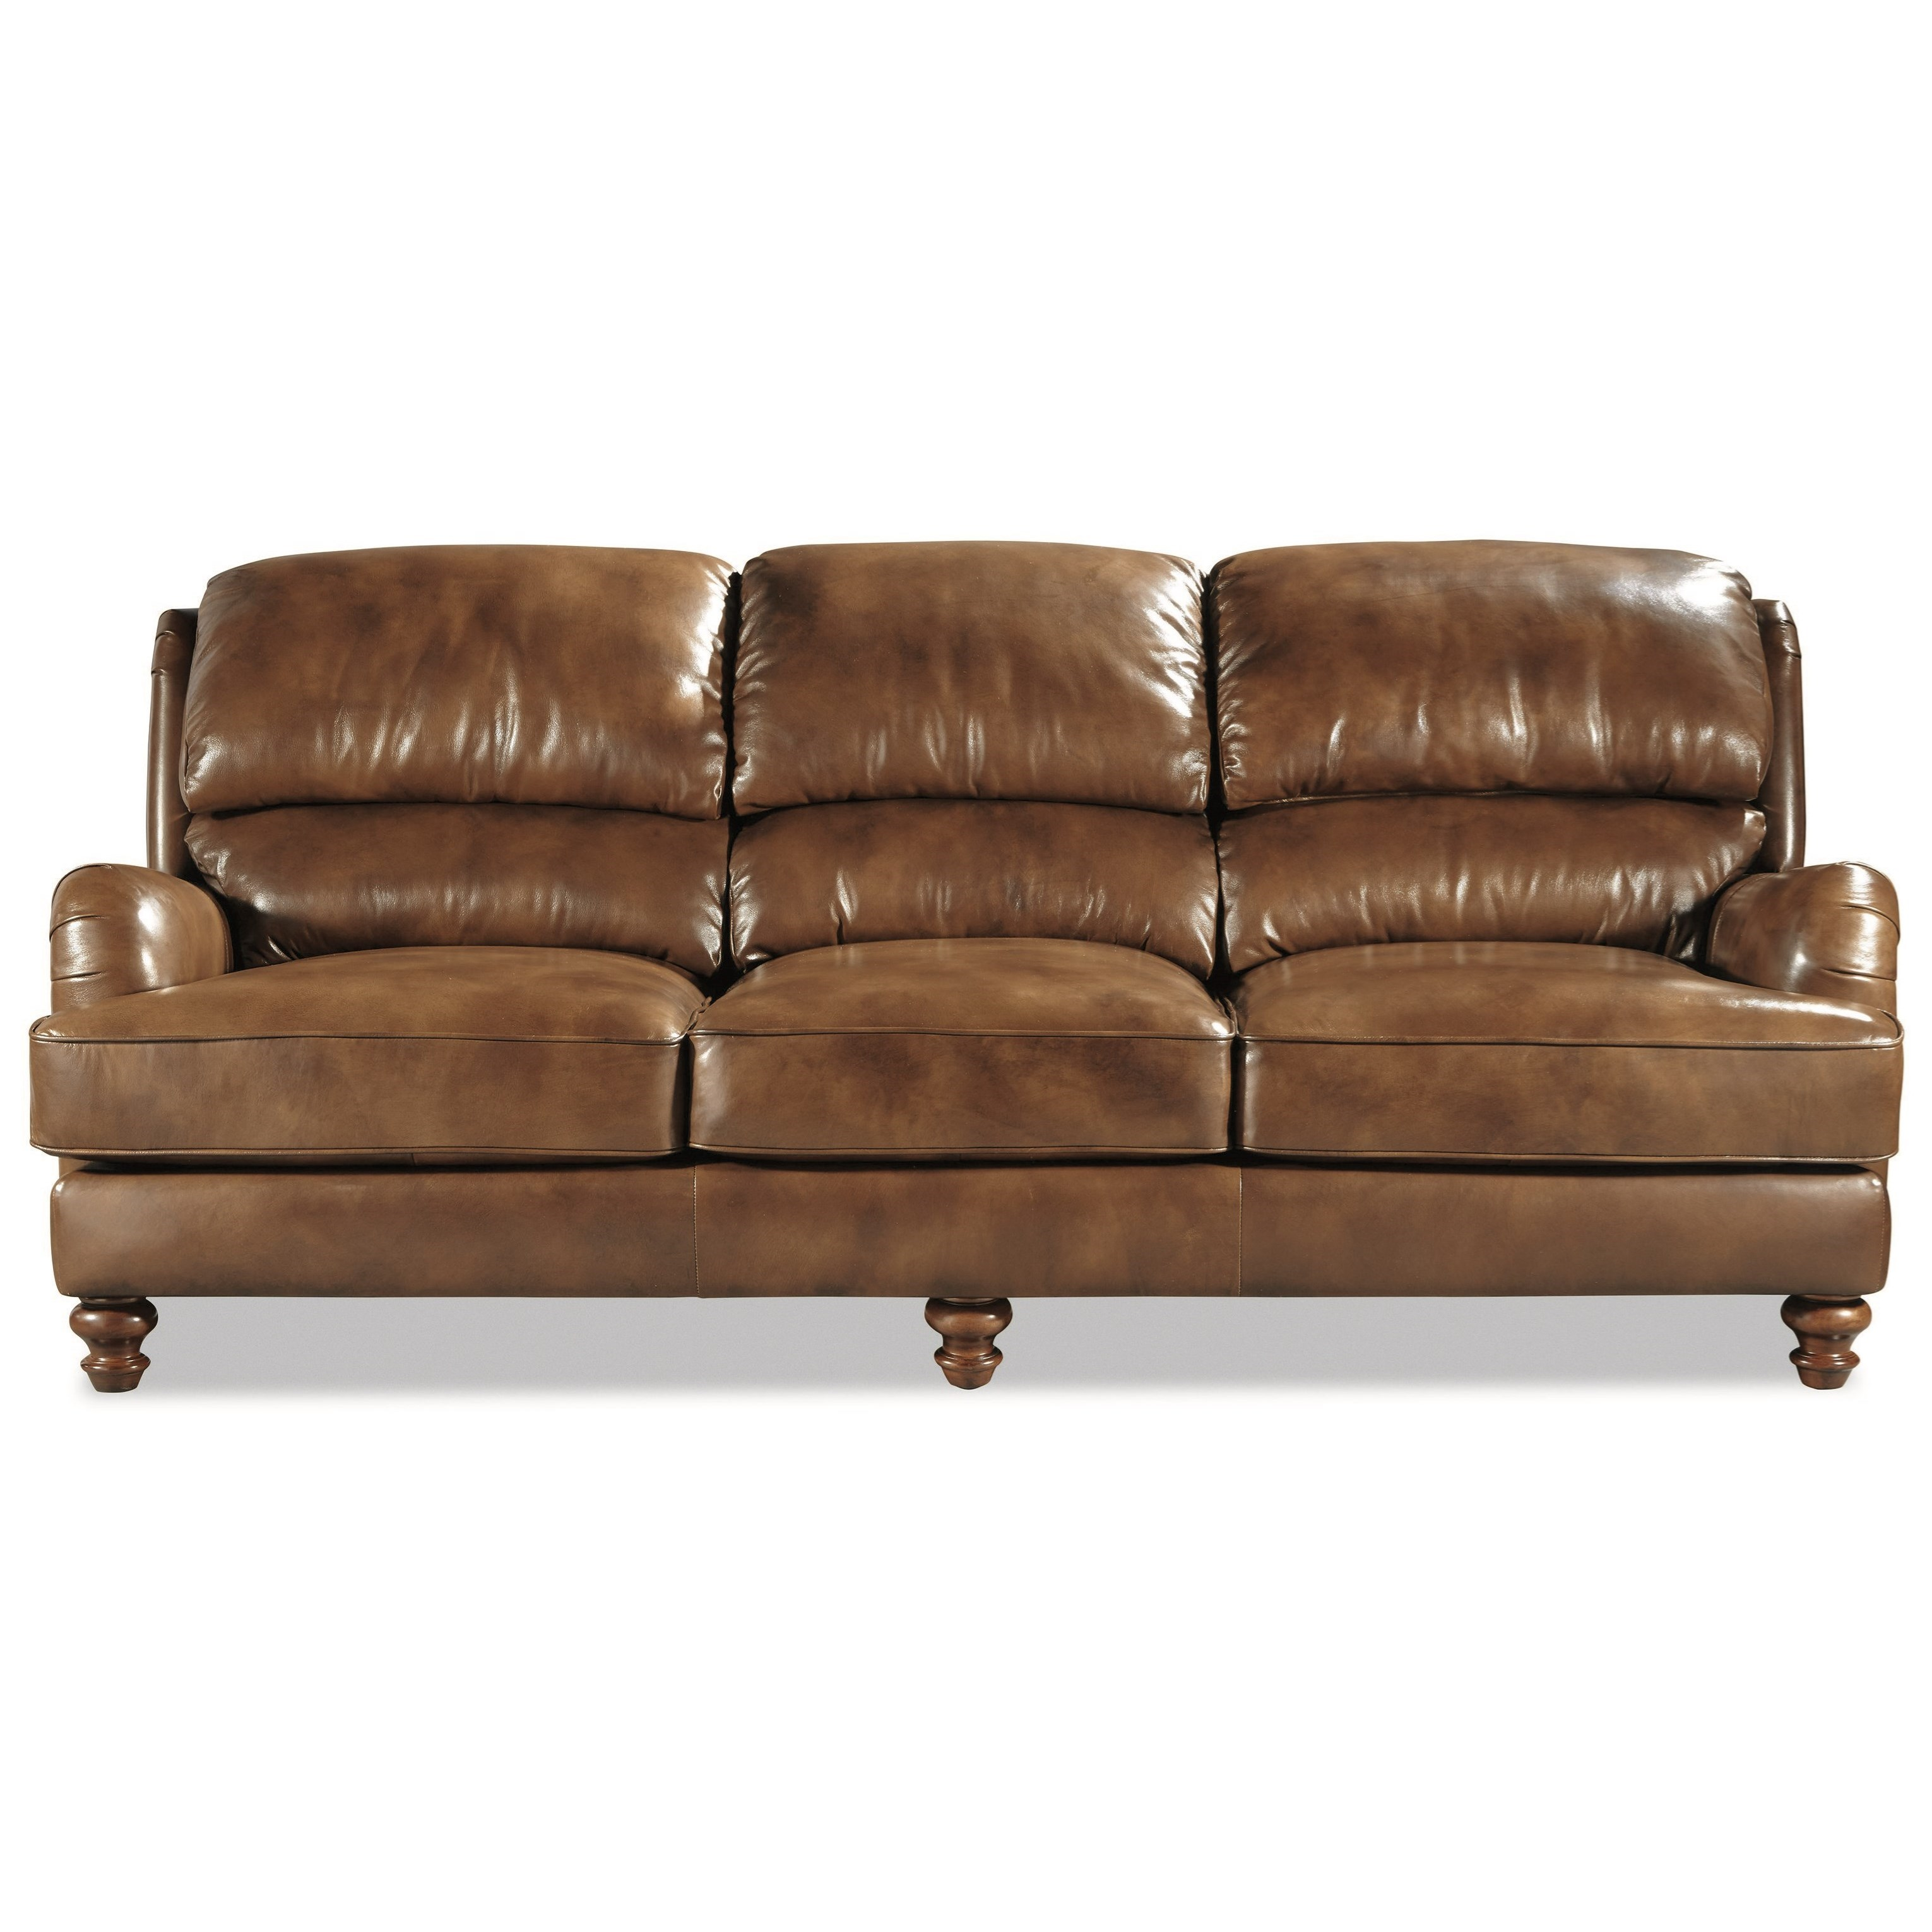 craftmaster sectional sofa reviews assemble yourself l162250 100 leather traditional